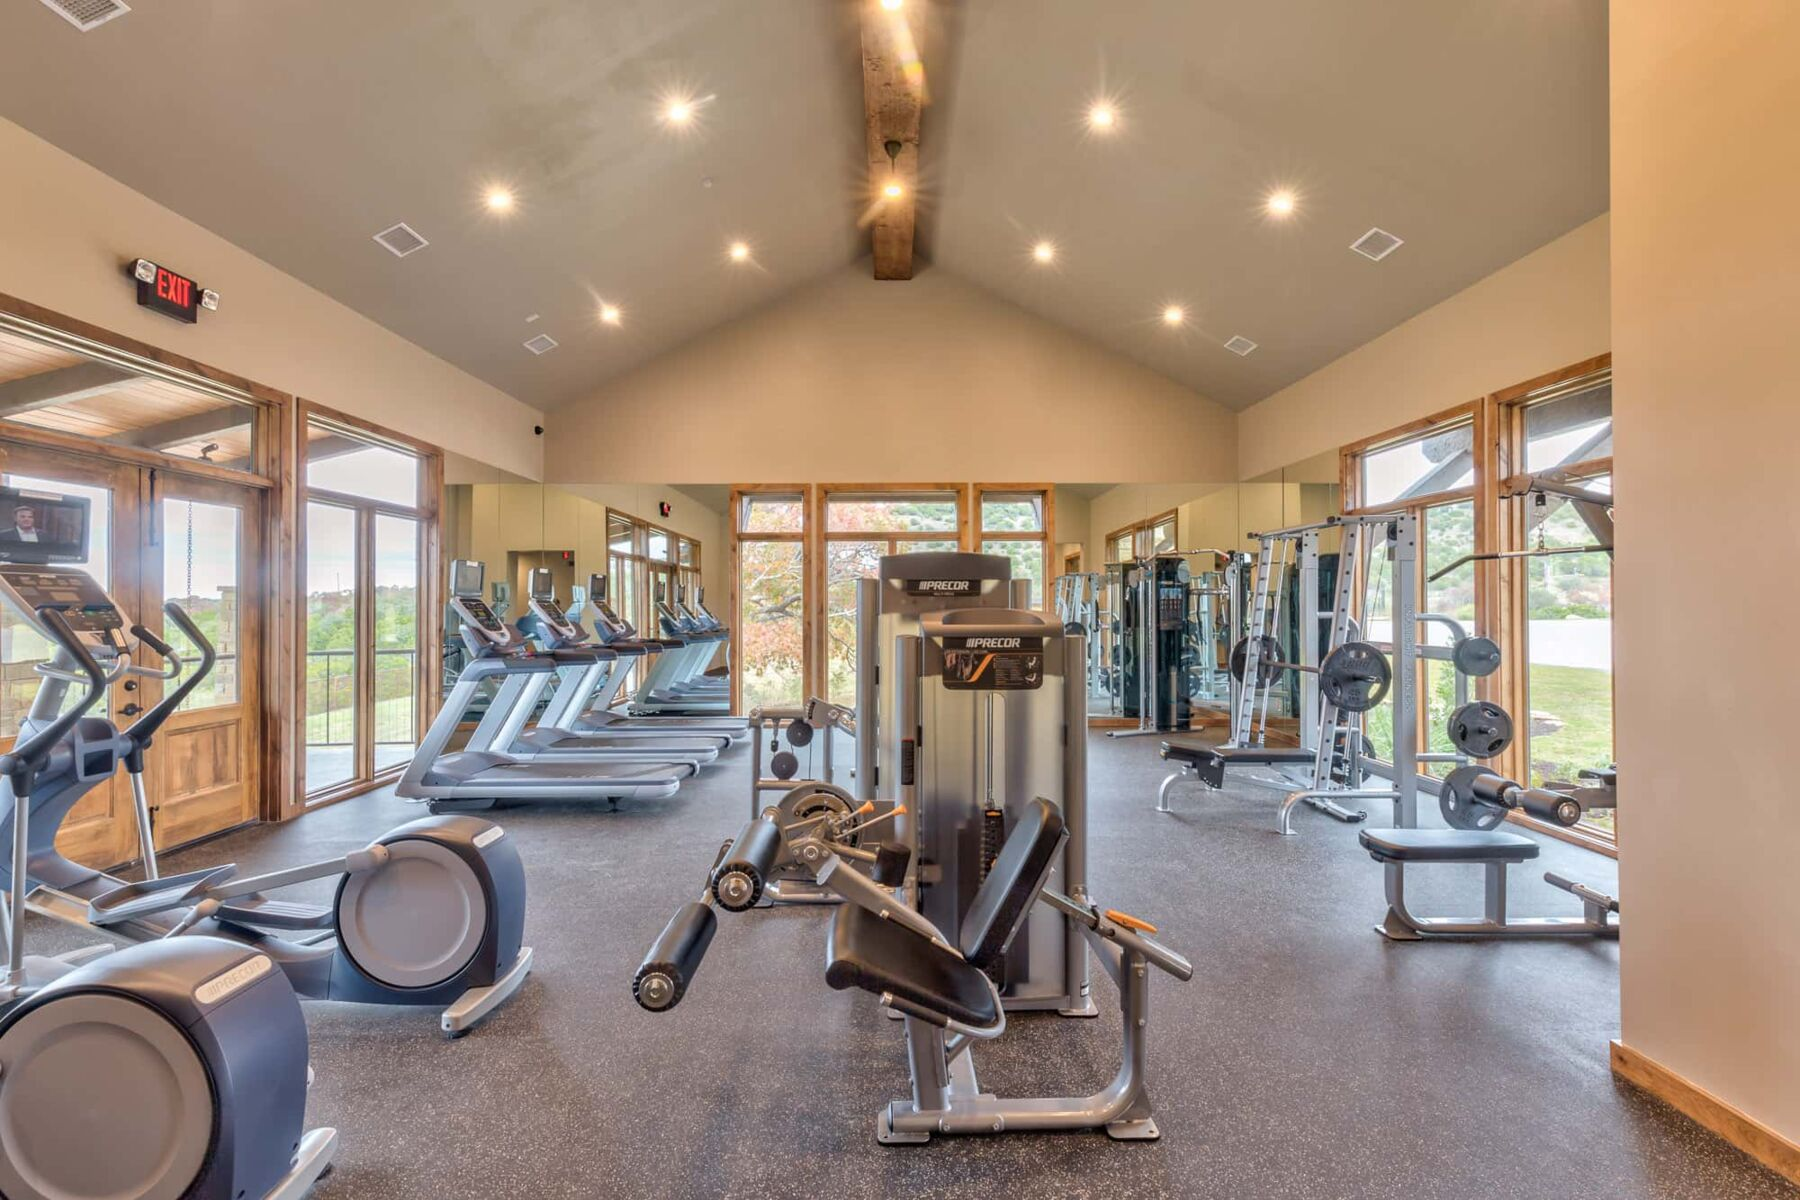 Sweetwater Fitness Center